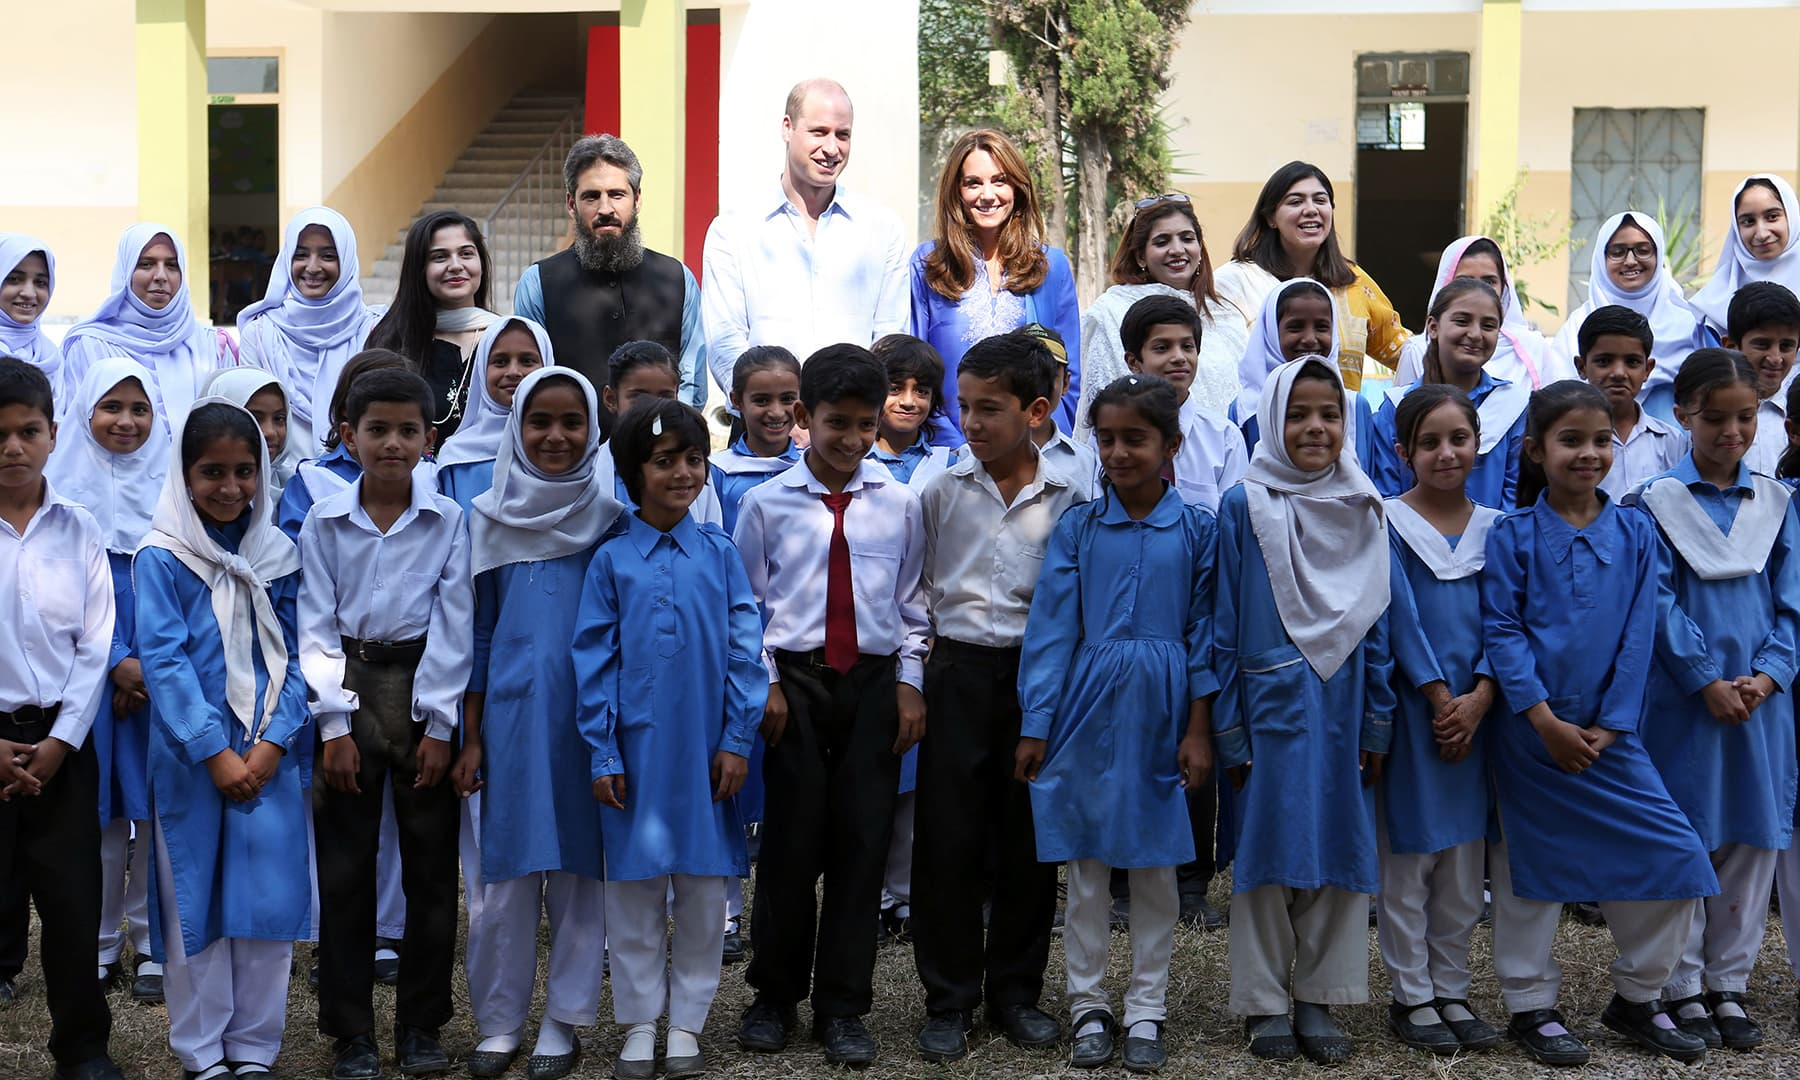 Prince William and Catherine, Duchess of Cambridge pose for a group photo with staff and students at a school during a trip to Islamabad, October 15. — Reuters